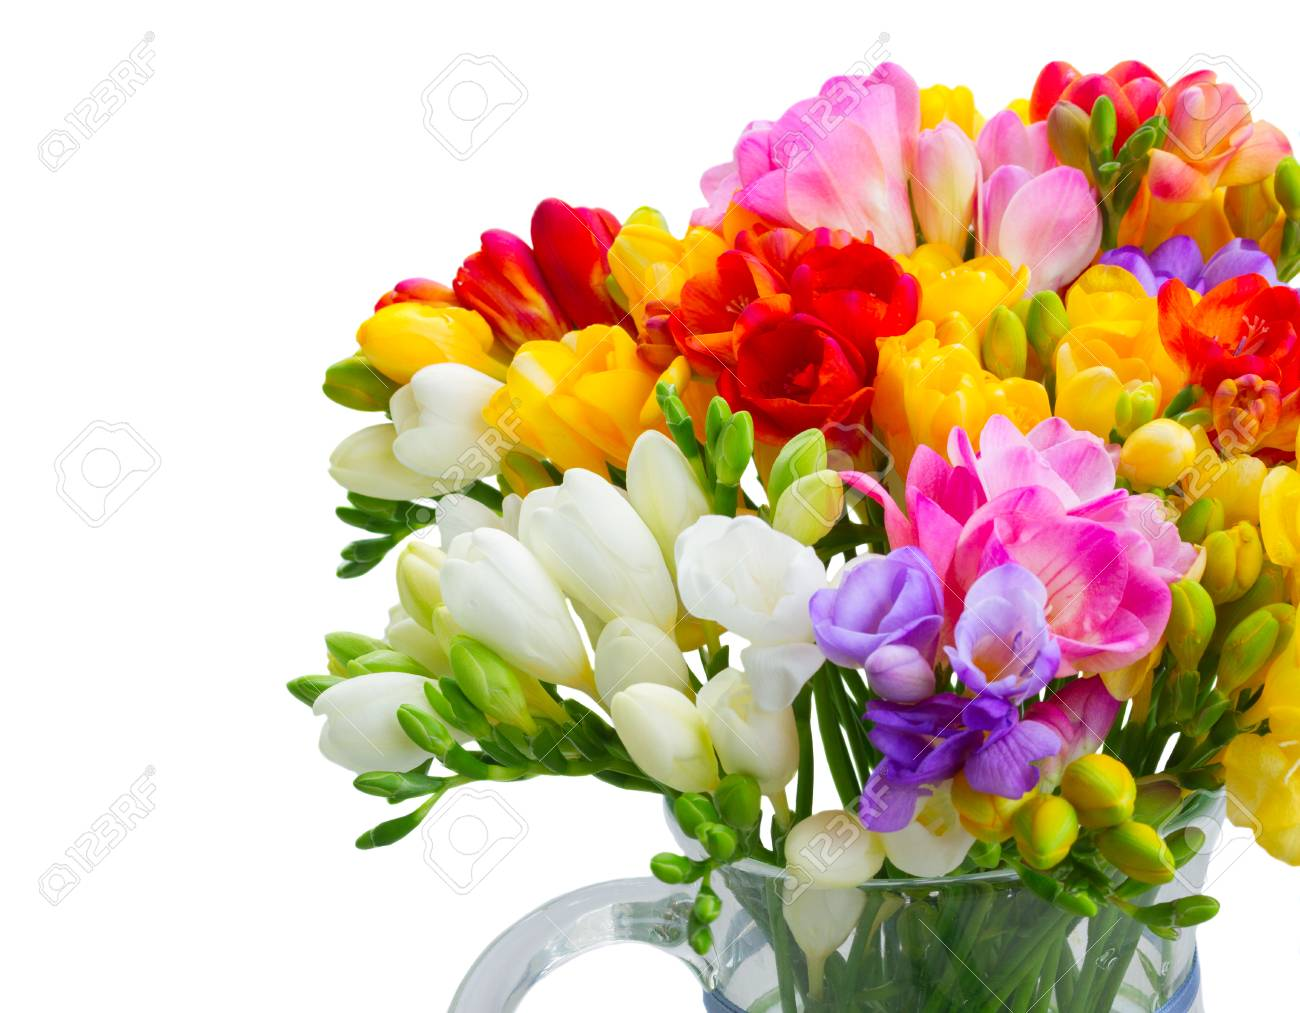 Freesia flowers bouquet isolated on white background stock photo freesia flowers bouquet isolated on white background stock photo 92509700 izmirmasajfo Gallery